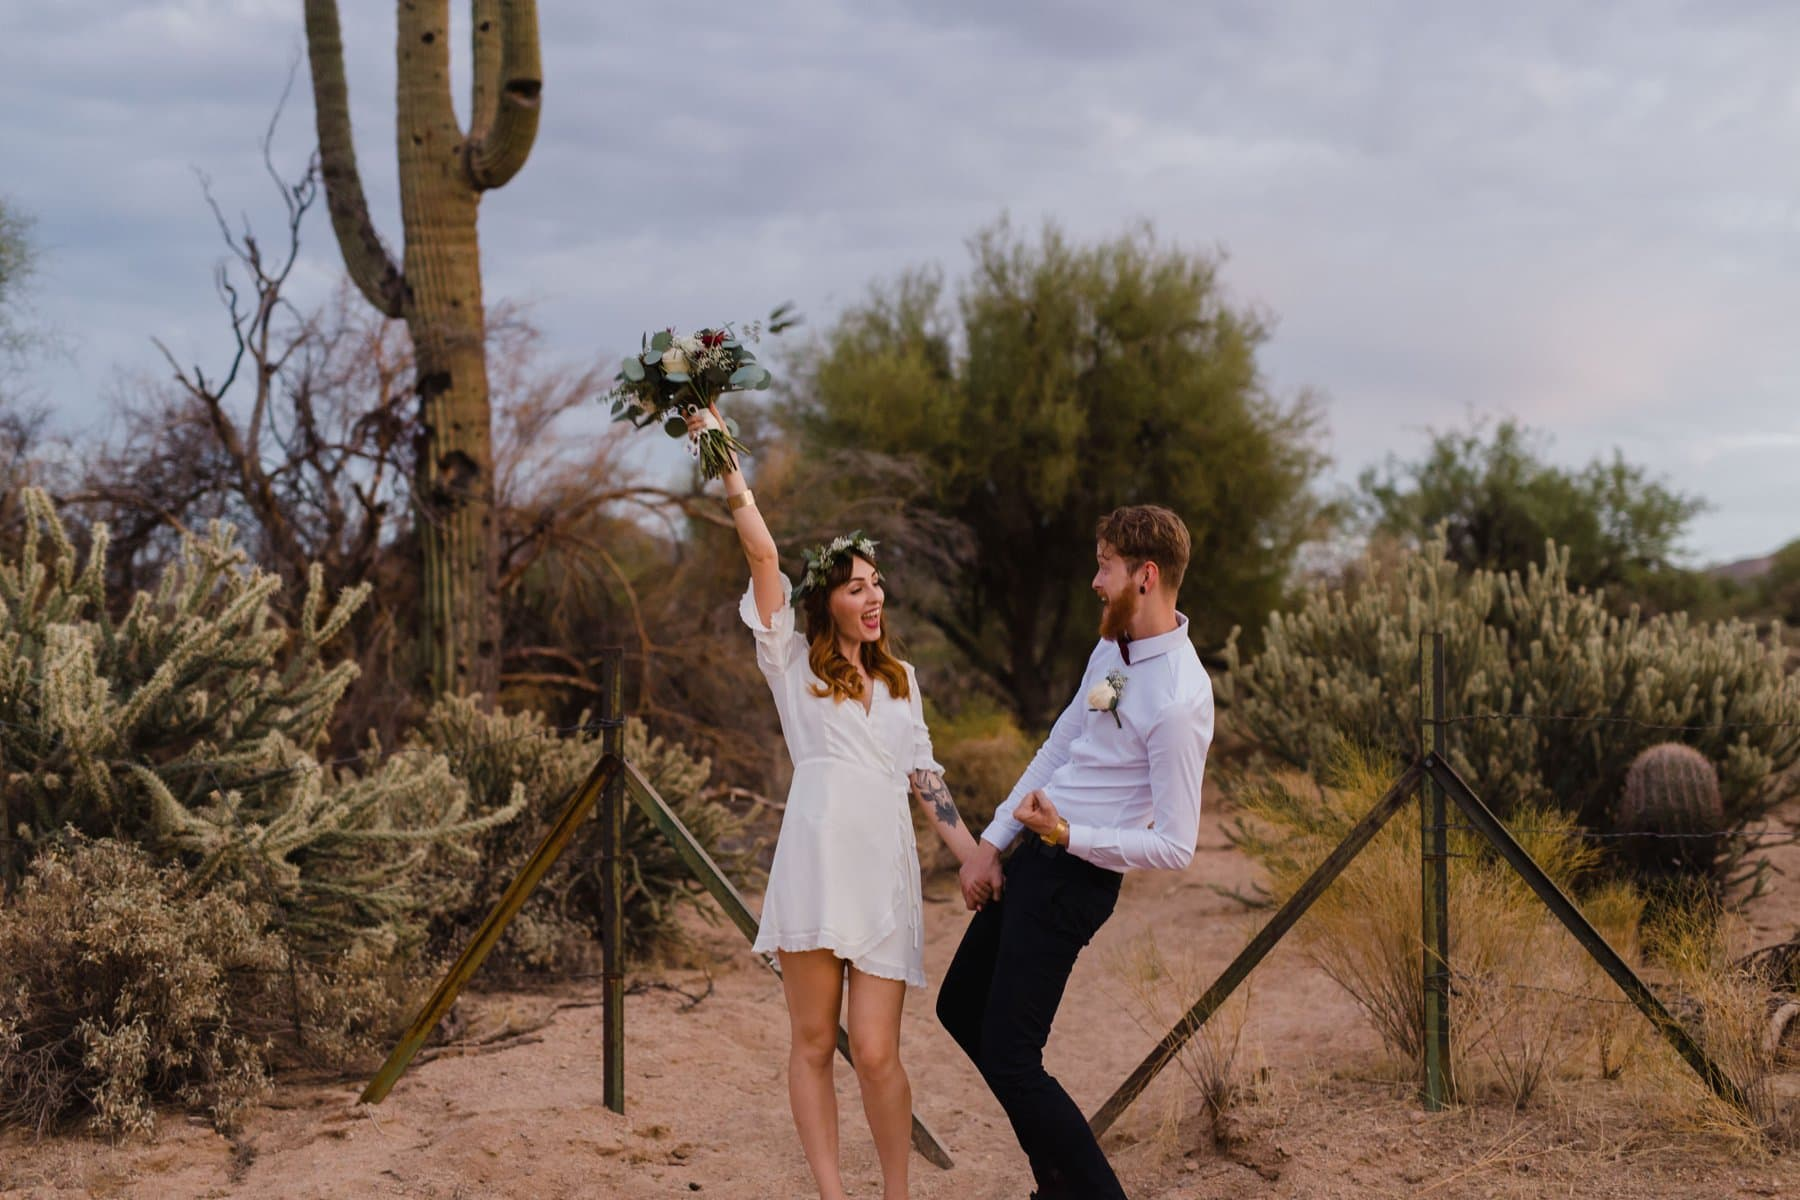 emotional candid natural elopement wedding photos in Arizona